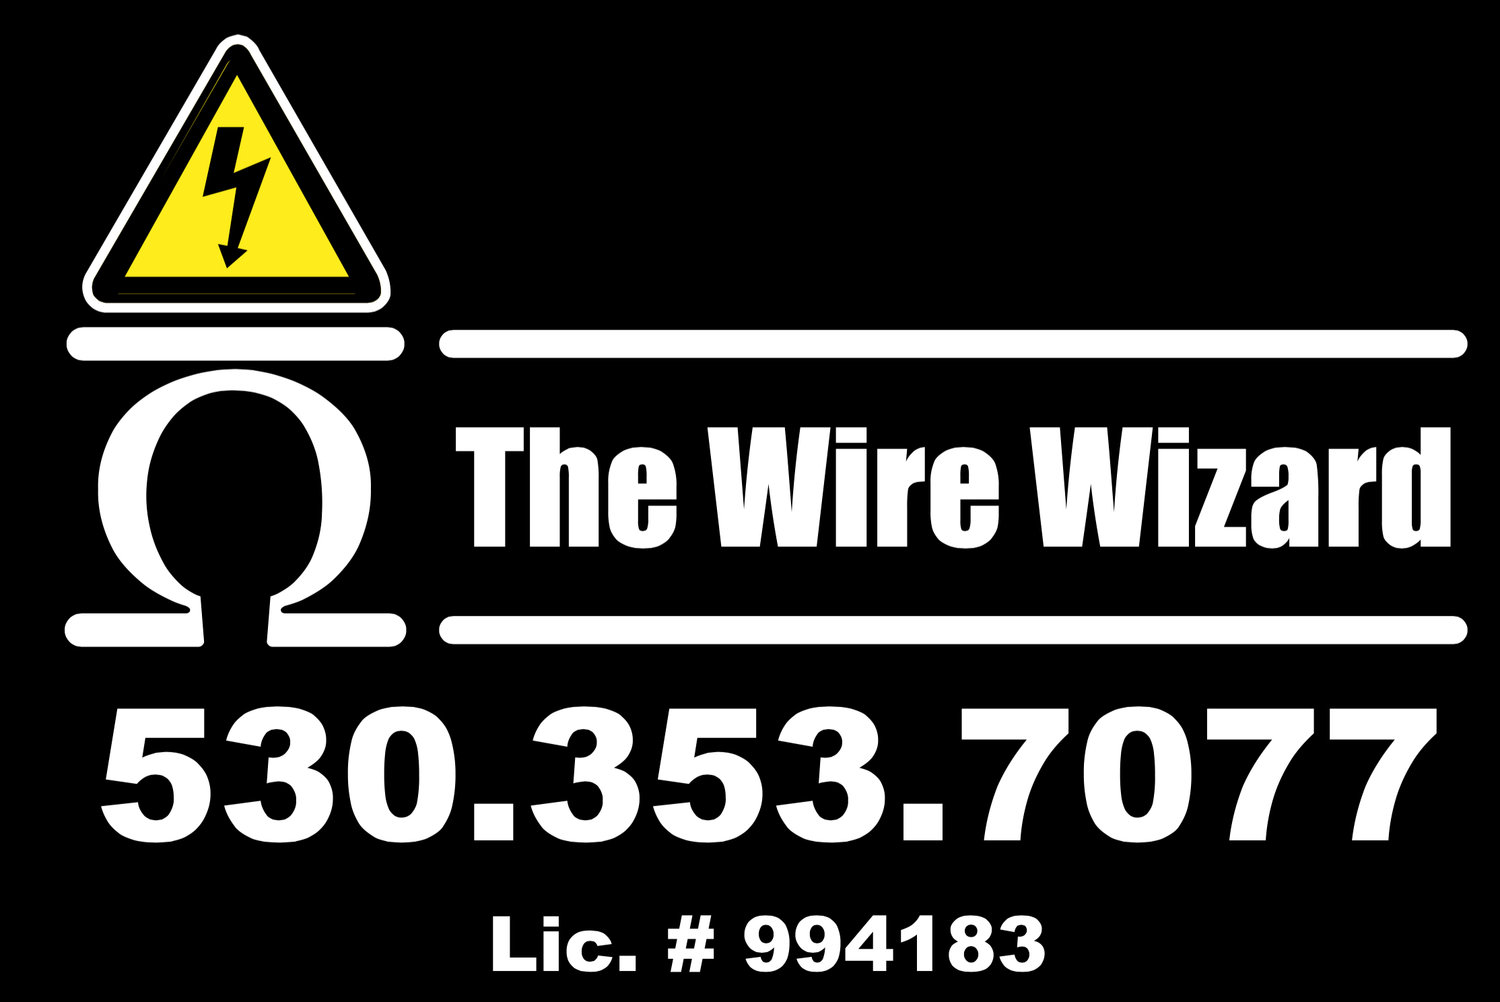 The Wire Wizard Sub Wiring Electrician Extraordinaire Westwood Lake Almanor Susanville Greenville